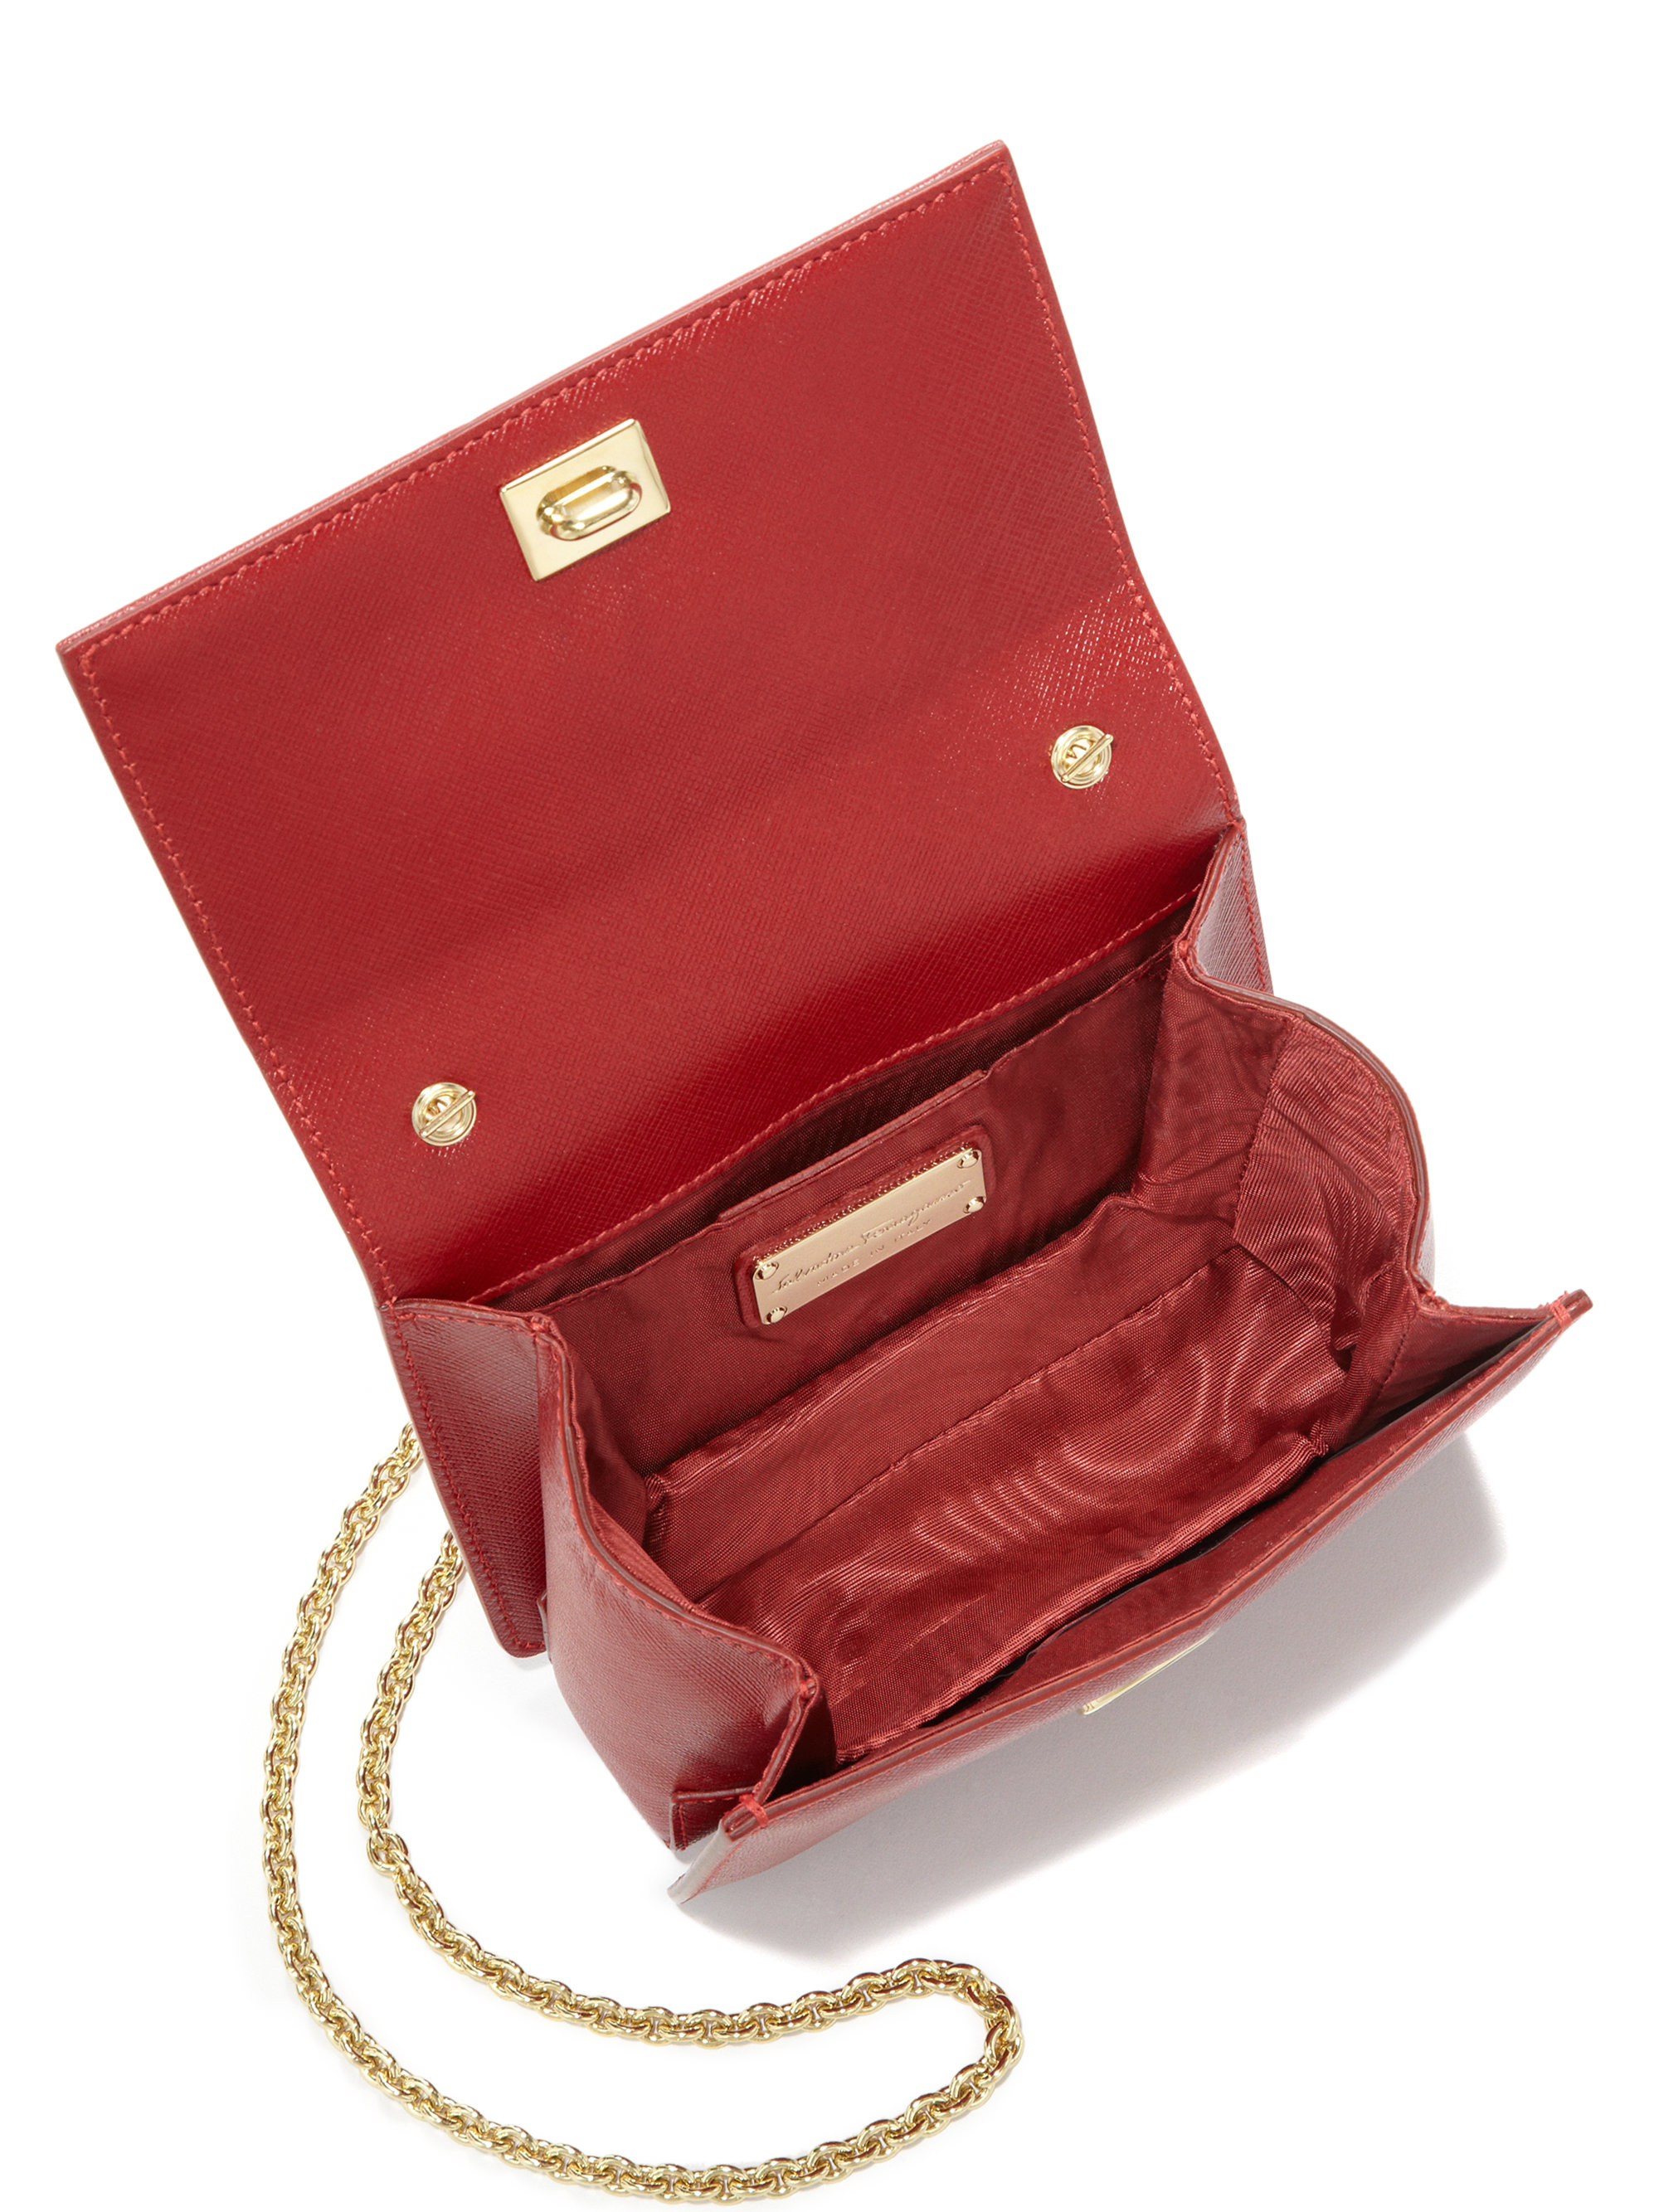 18f0e09aba90 Lyst - Ferragamo Ginny Mini Square Saffiano Leather Crossbody Bag in Red